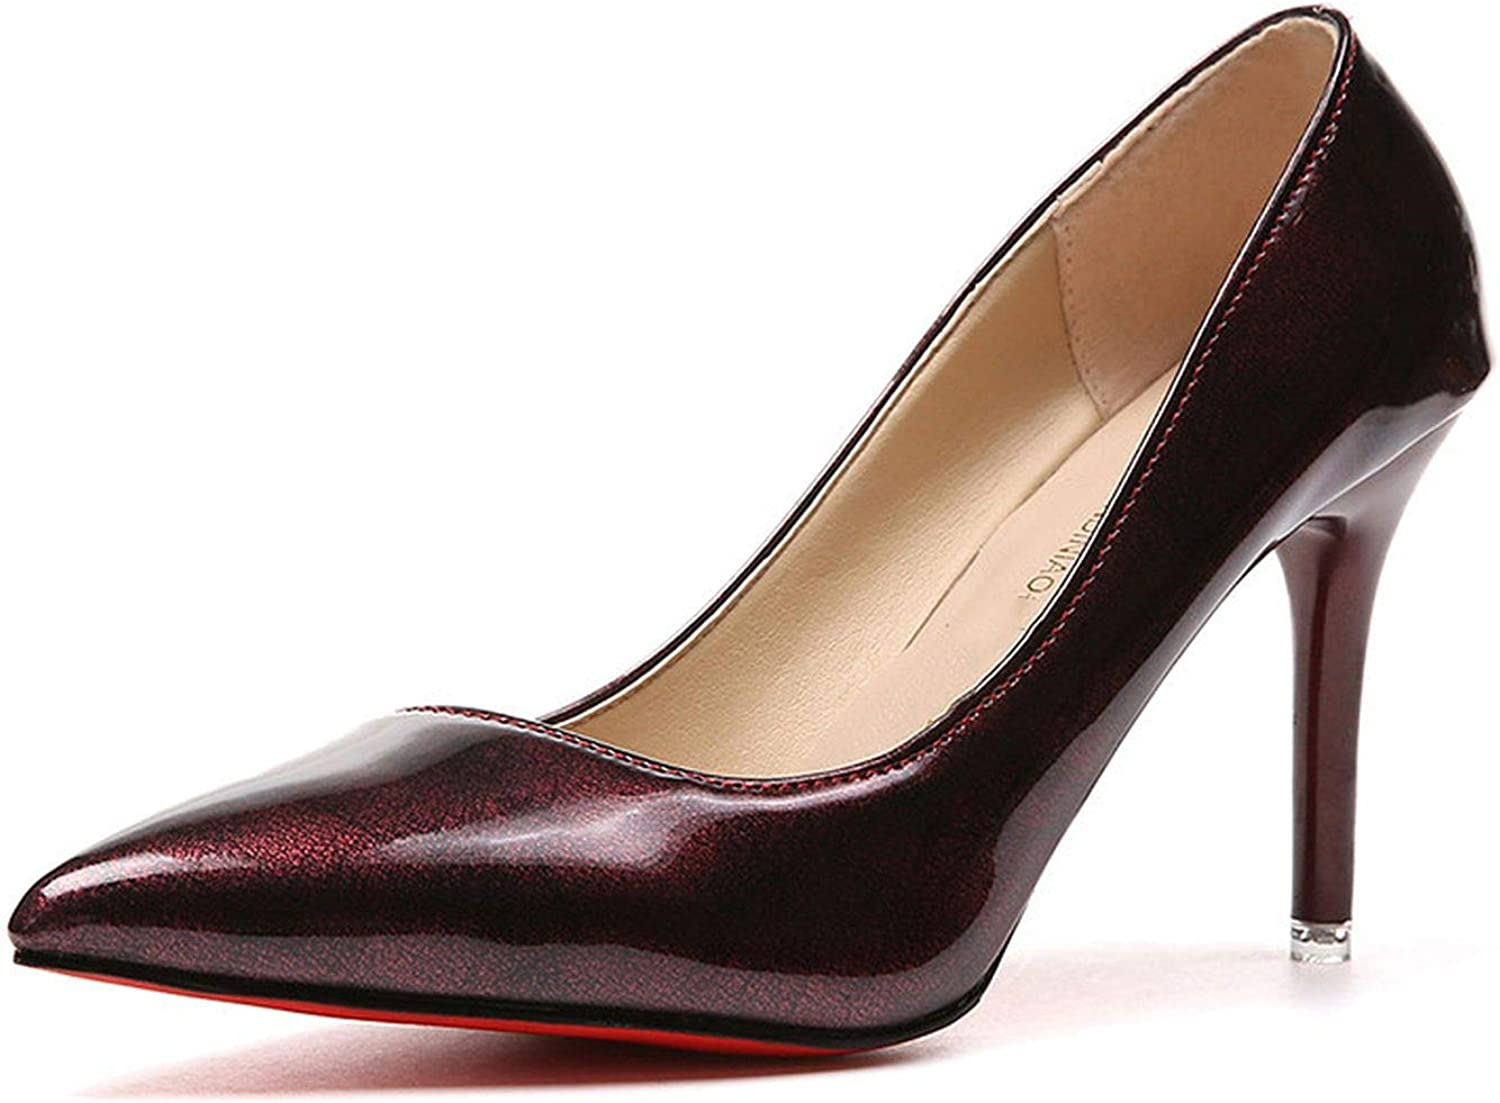 Youthern Heels Cinderella shoes Women Pumps Pointed Toe Wine Red Wedding 7Cm Thin Heels Office shoes